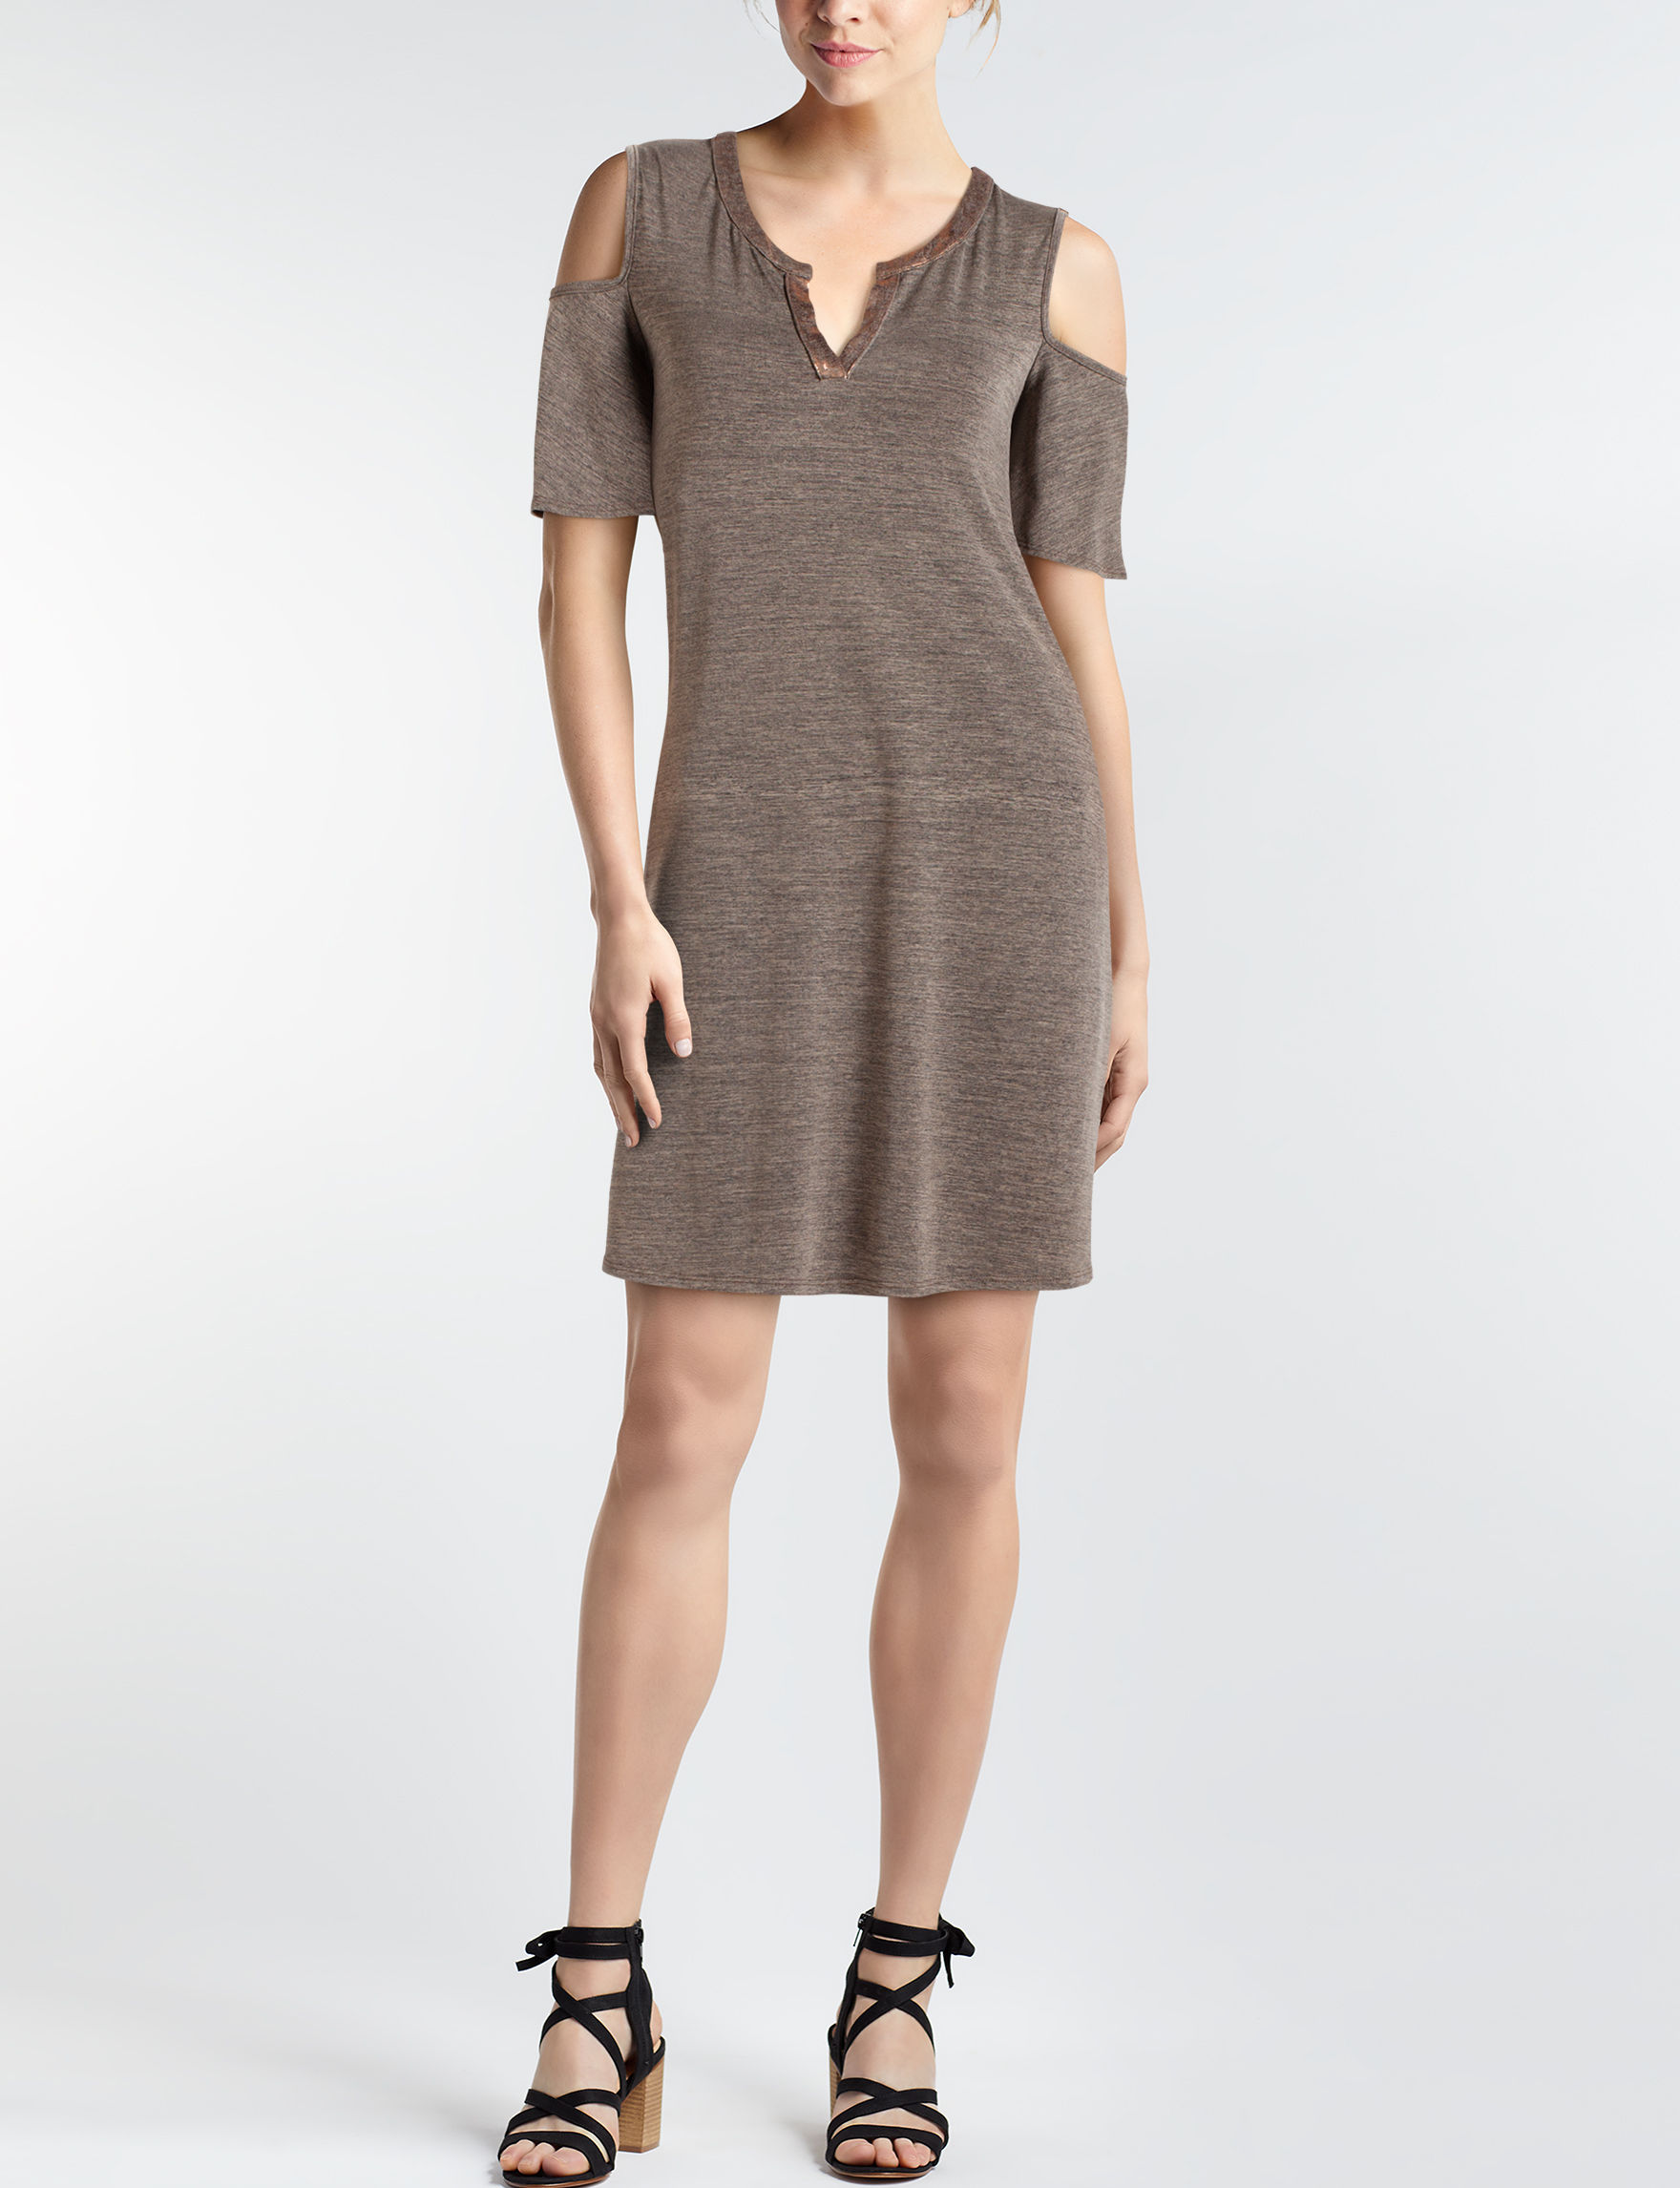 A. Byer Grey Everyday & Casual Shift Dresses